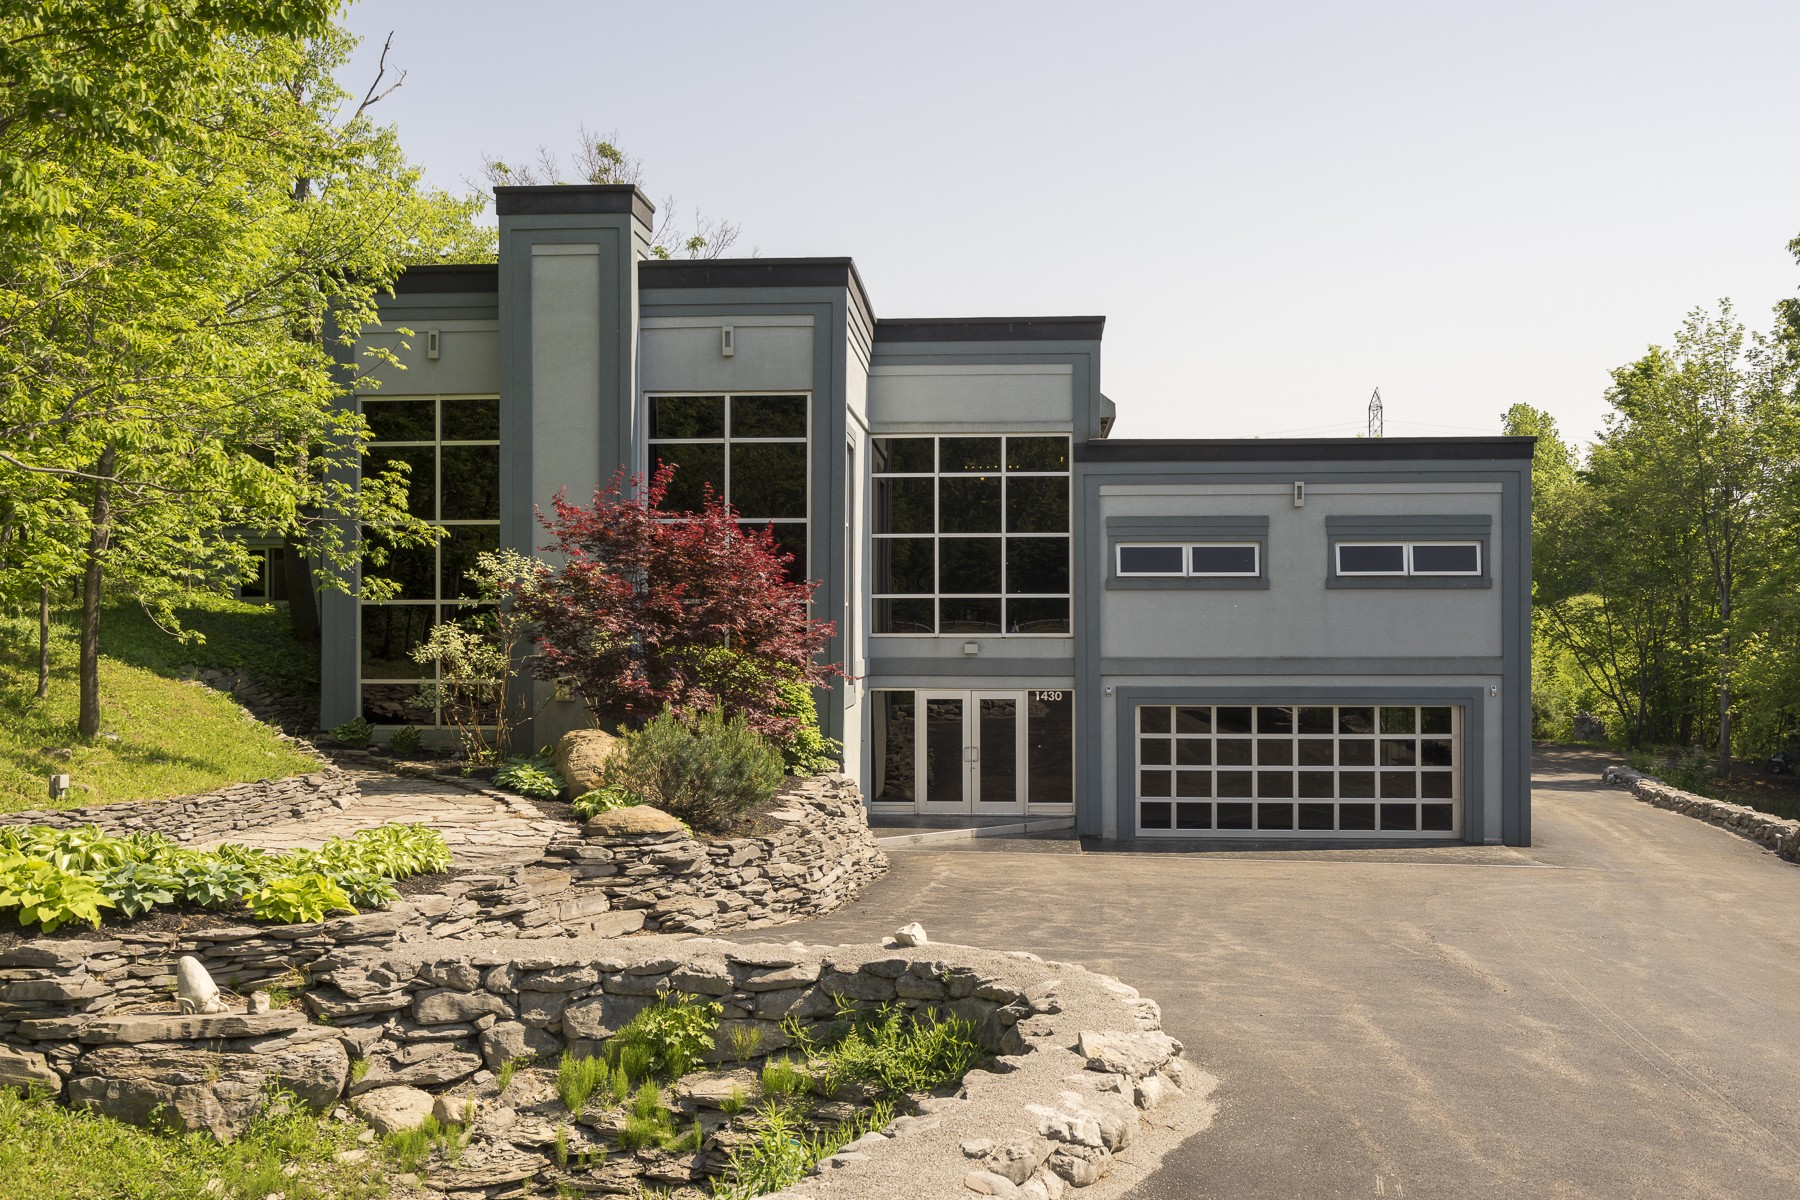 Single Family Home for Sale at Spectacular Contemporary Living! 1430 Bullis Rd Elma, 14059 United States